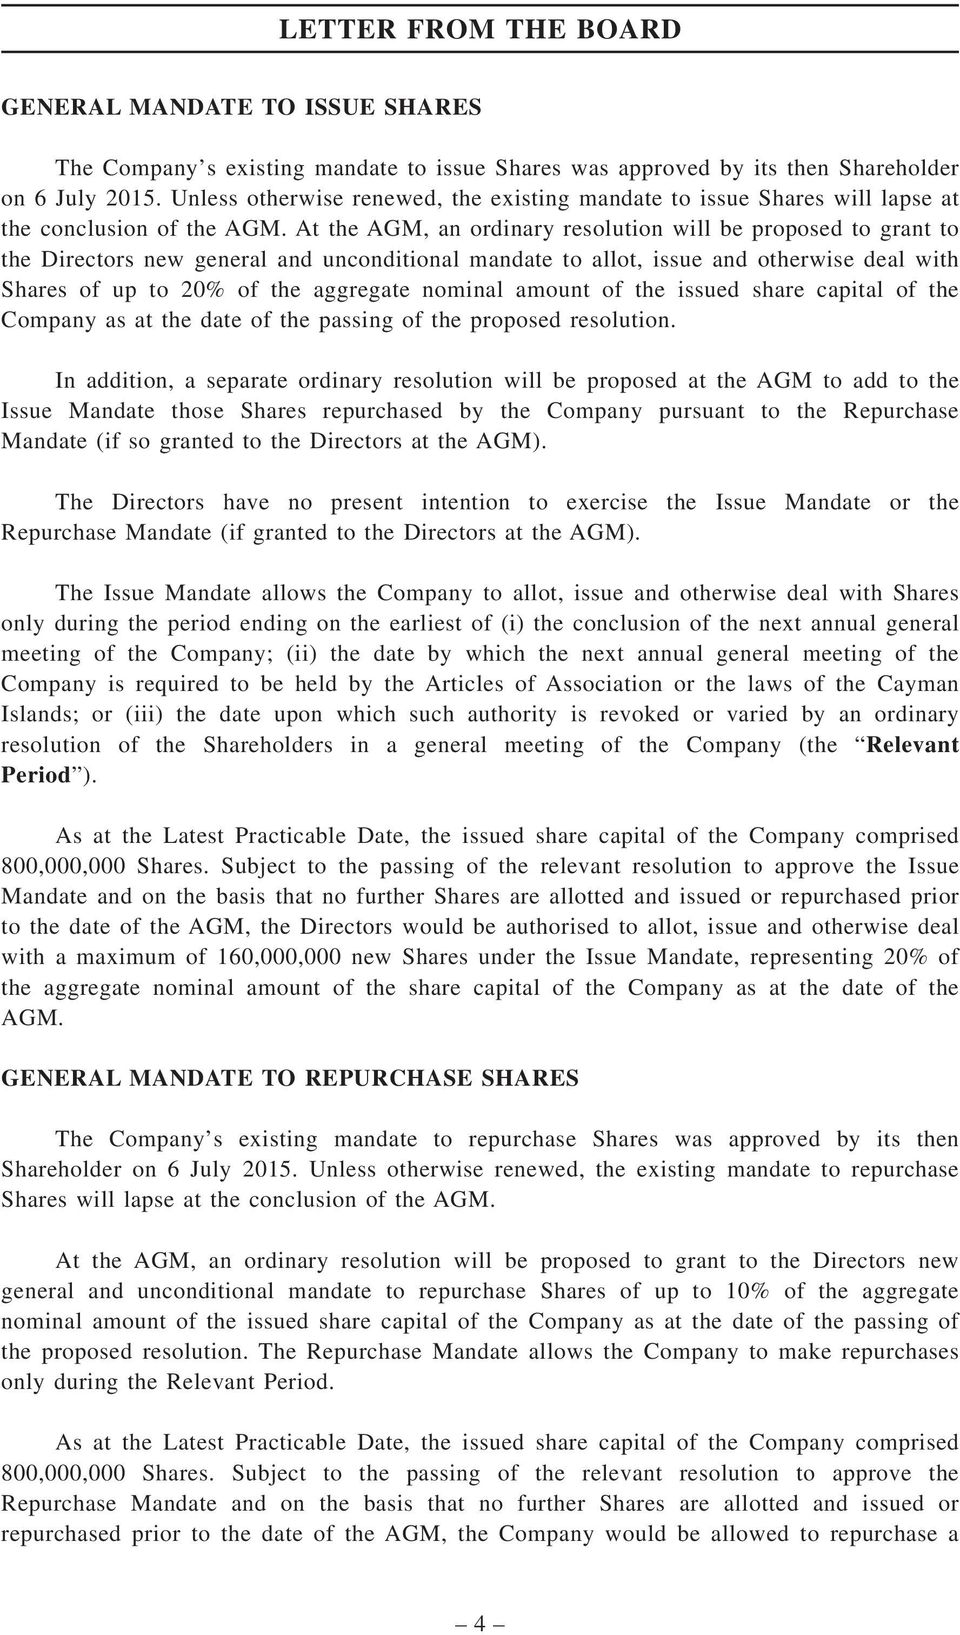 At the AGM, an ordinary resolution will be proposed to grant to the Directors new general and unconditional mandate to allot, issue and otherwise deal with Shares of up to 20% of the aggregate